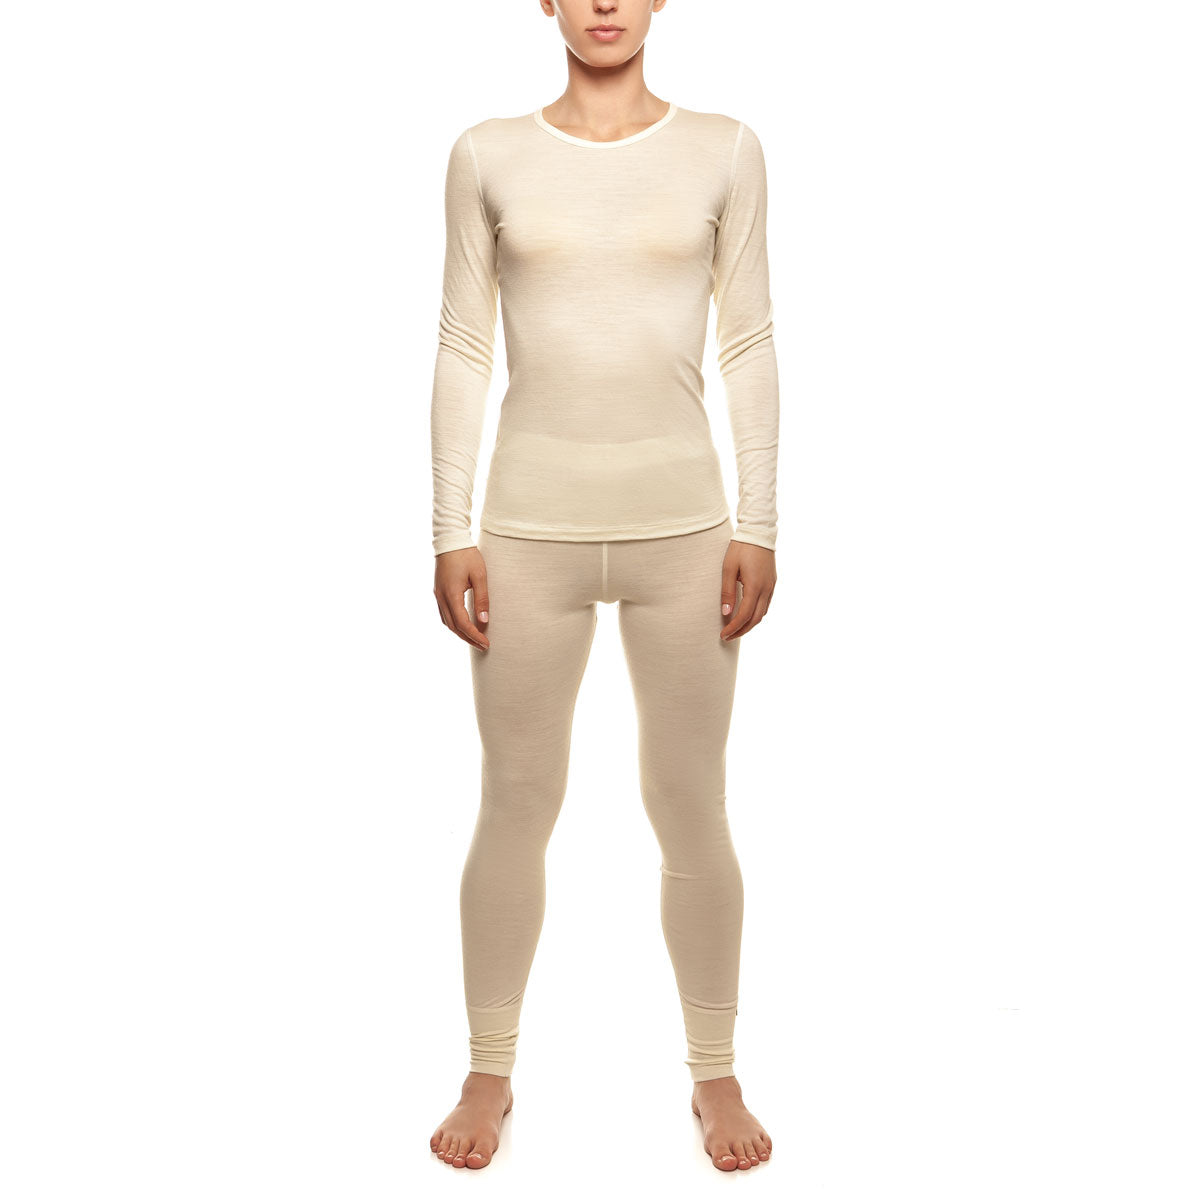 menique Women's Merino 160 Long Sleeve Set Natural Color